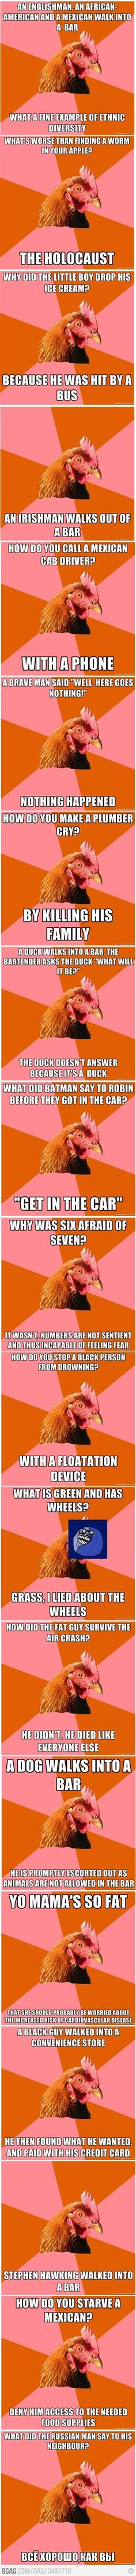 Anti-joke chicken- who I secretly think is Dwight Shrute!